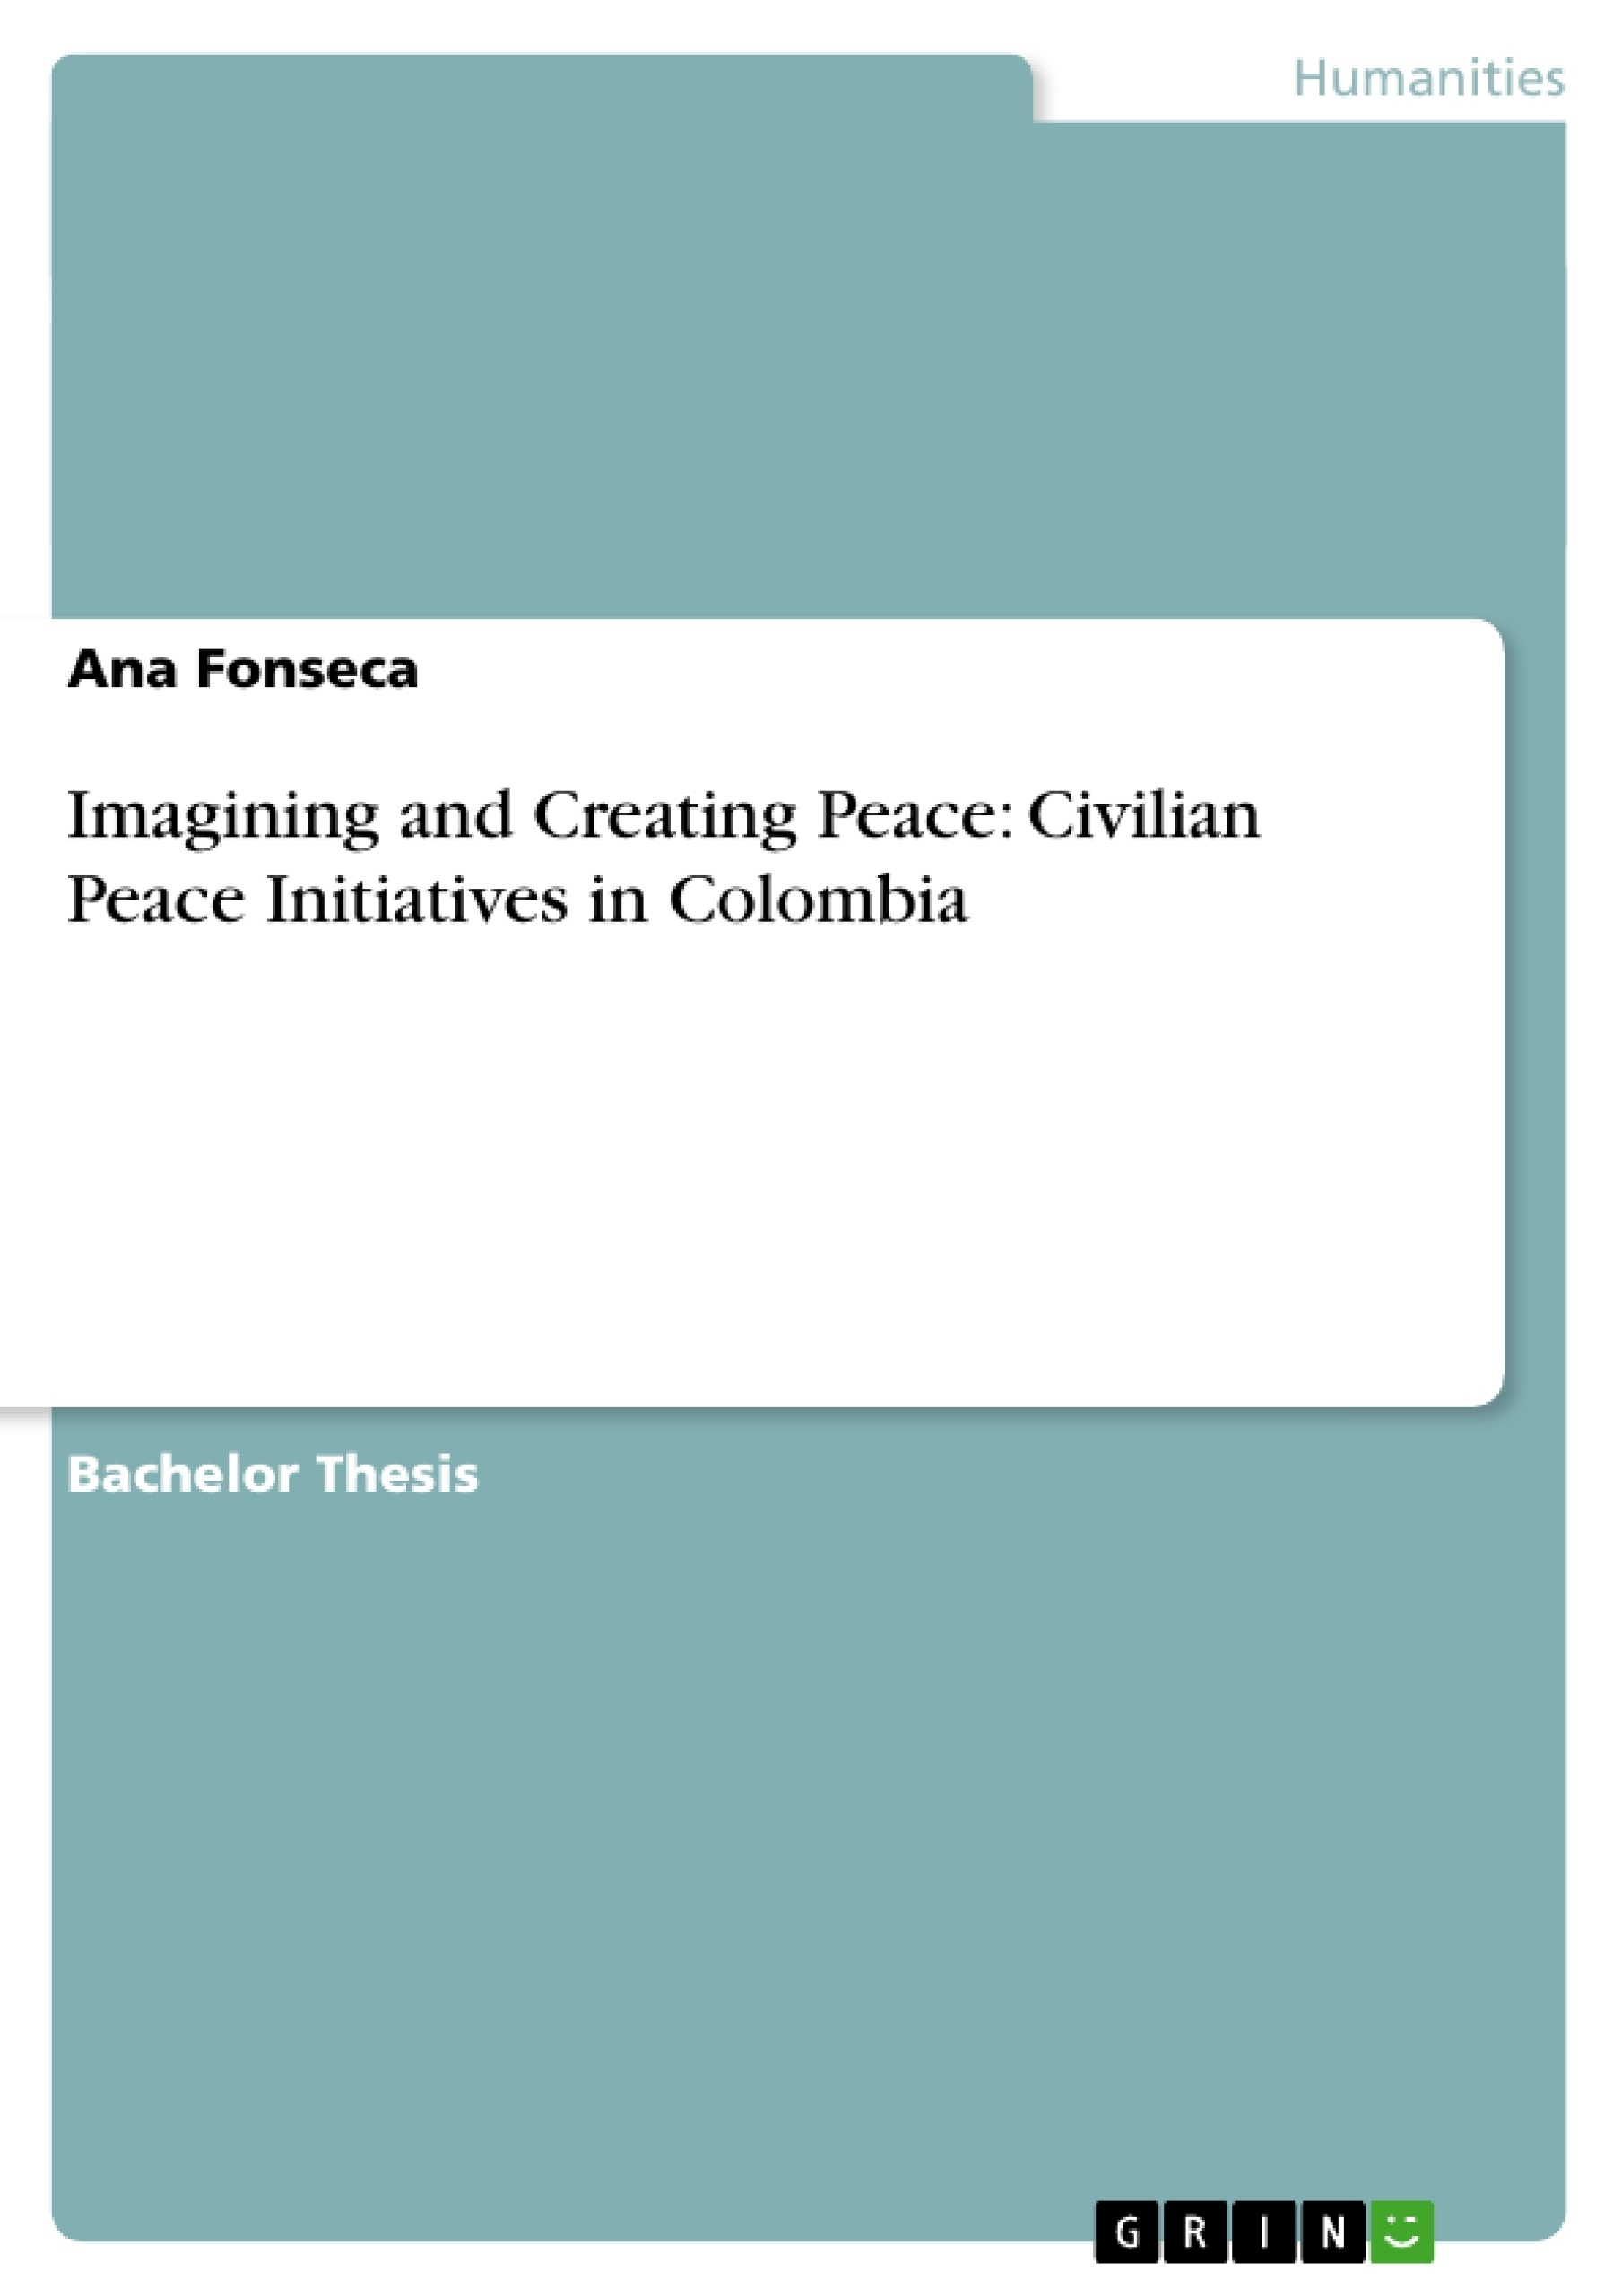 Title: Imagining and Creating Peace: Civilian Peace Initiatives in Colombia